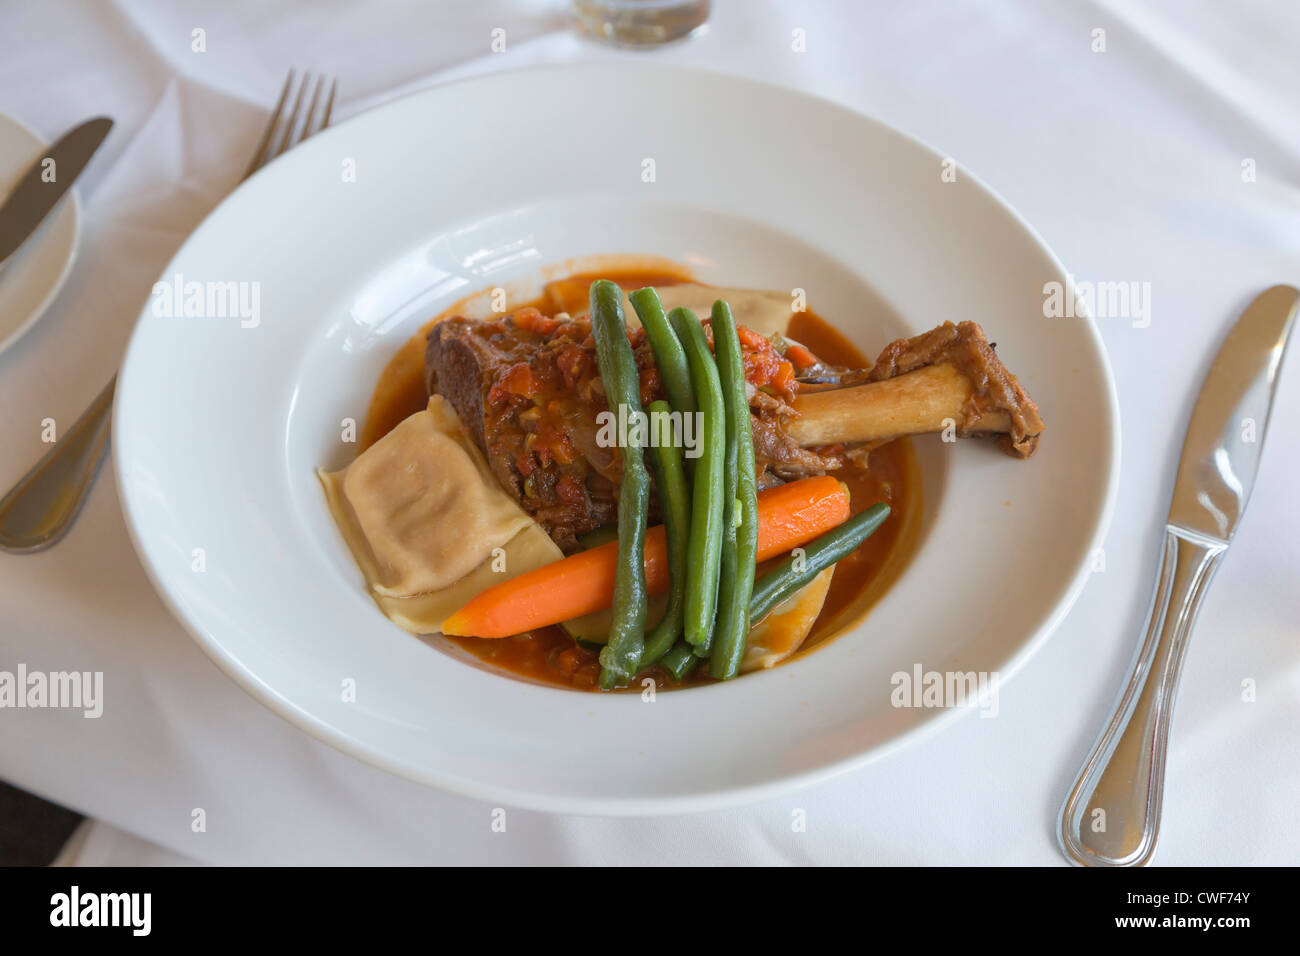 Lamb shank with green beans, carrots and home made pasta - Stock Image